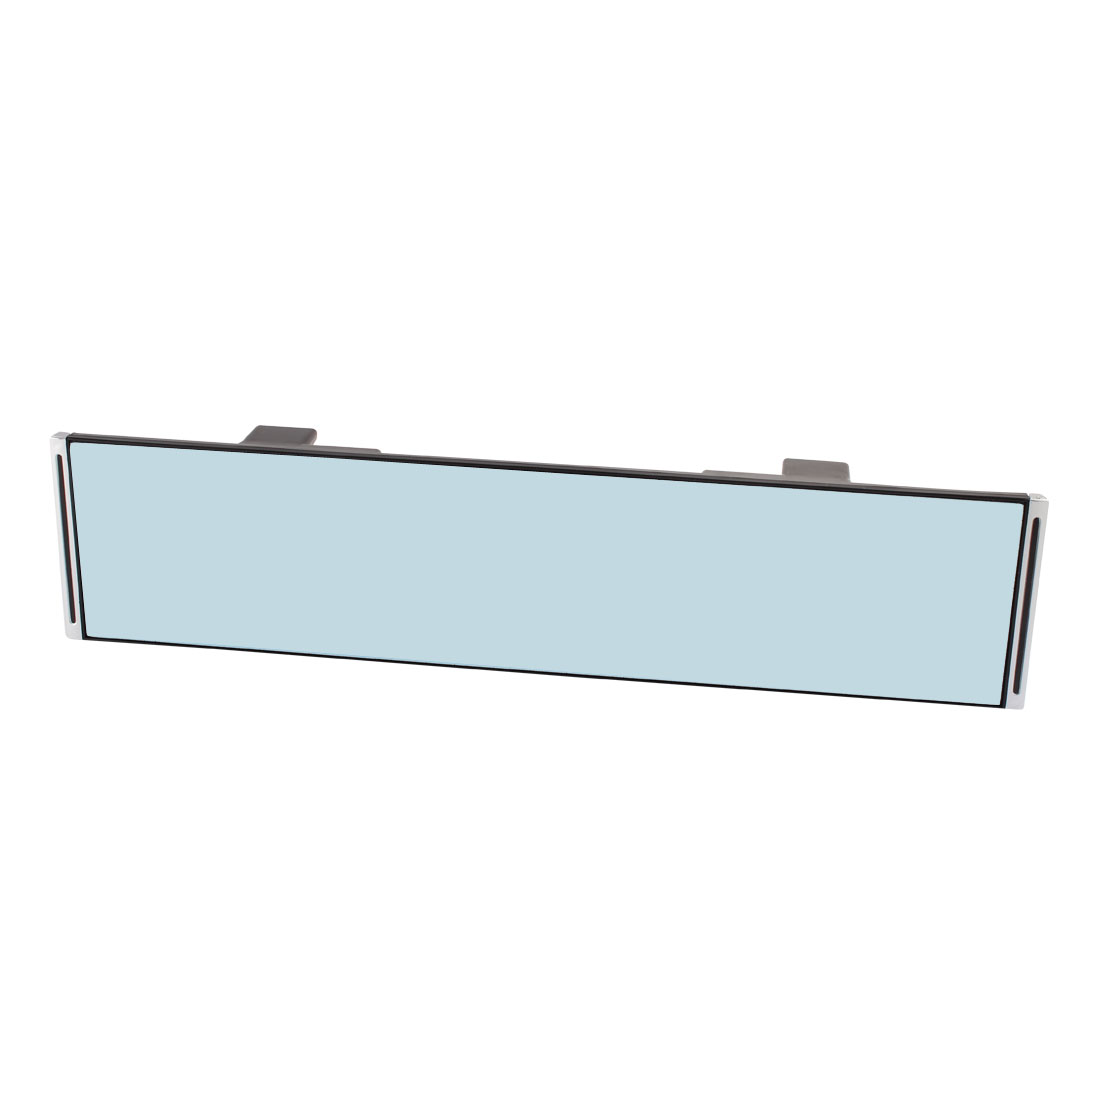 Auto Car Interior Rectangle Blue Wide Angle Flat Rear View Mirror 30cm Length